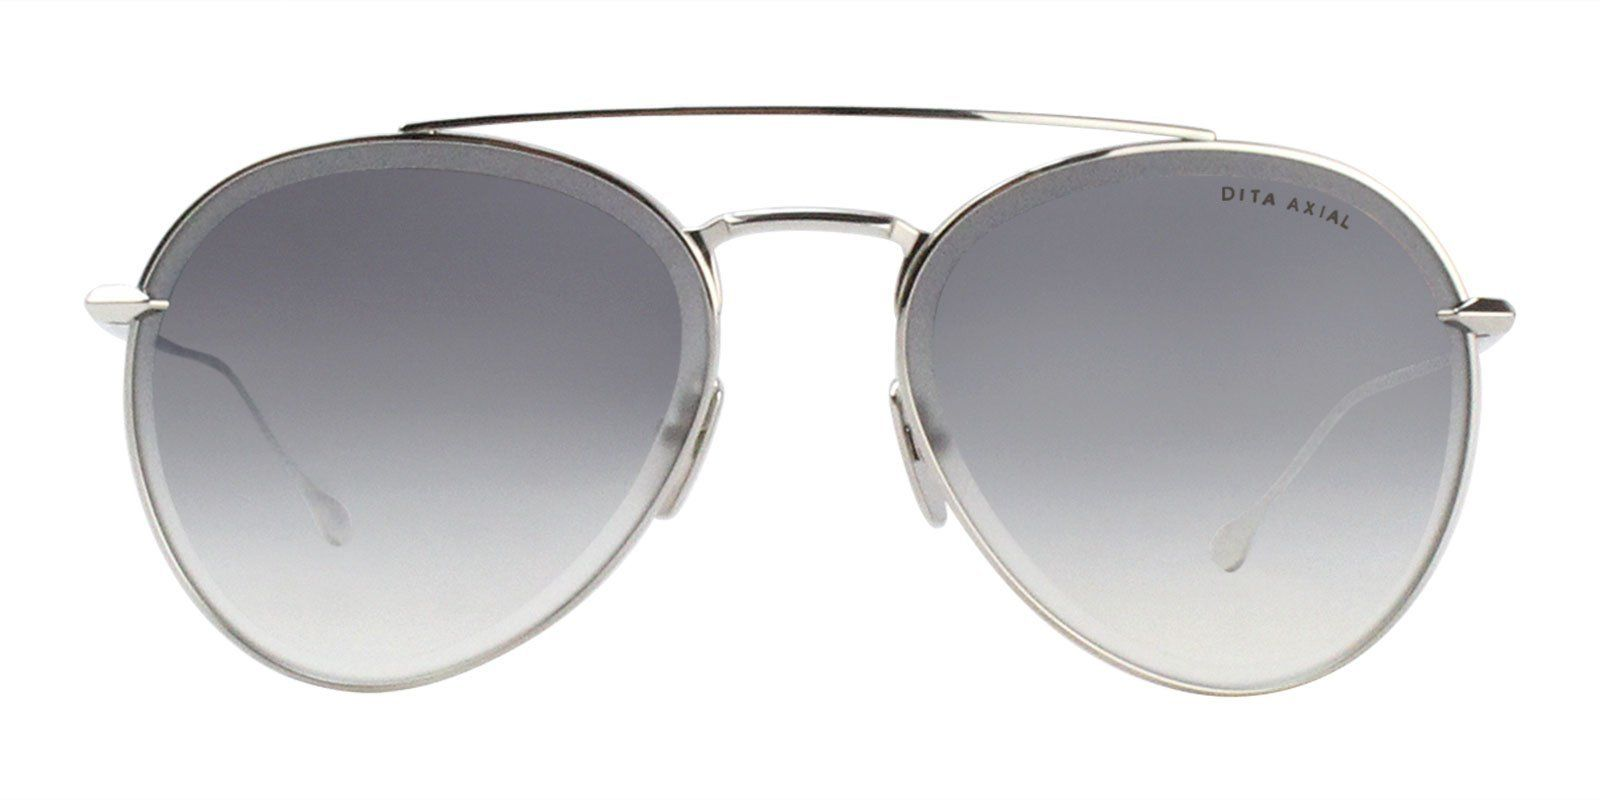 44310b5011e Dita - AXIAL Silver - Dark Grey to Clear - Silver Flash sunglasses ...